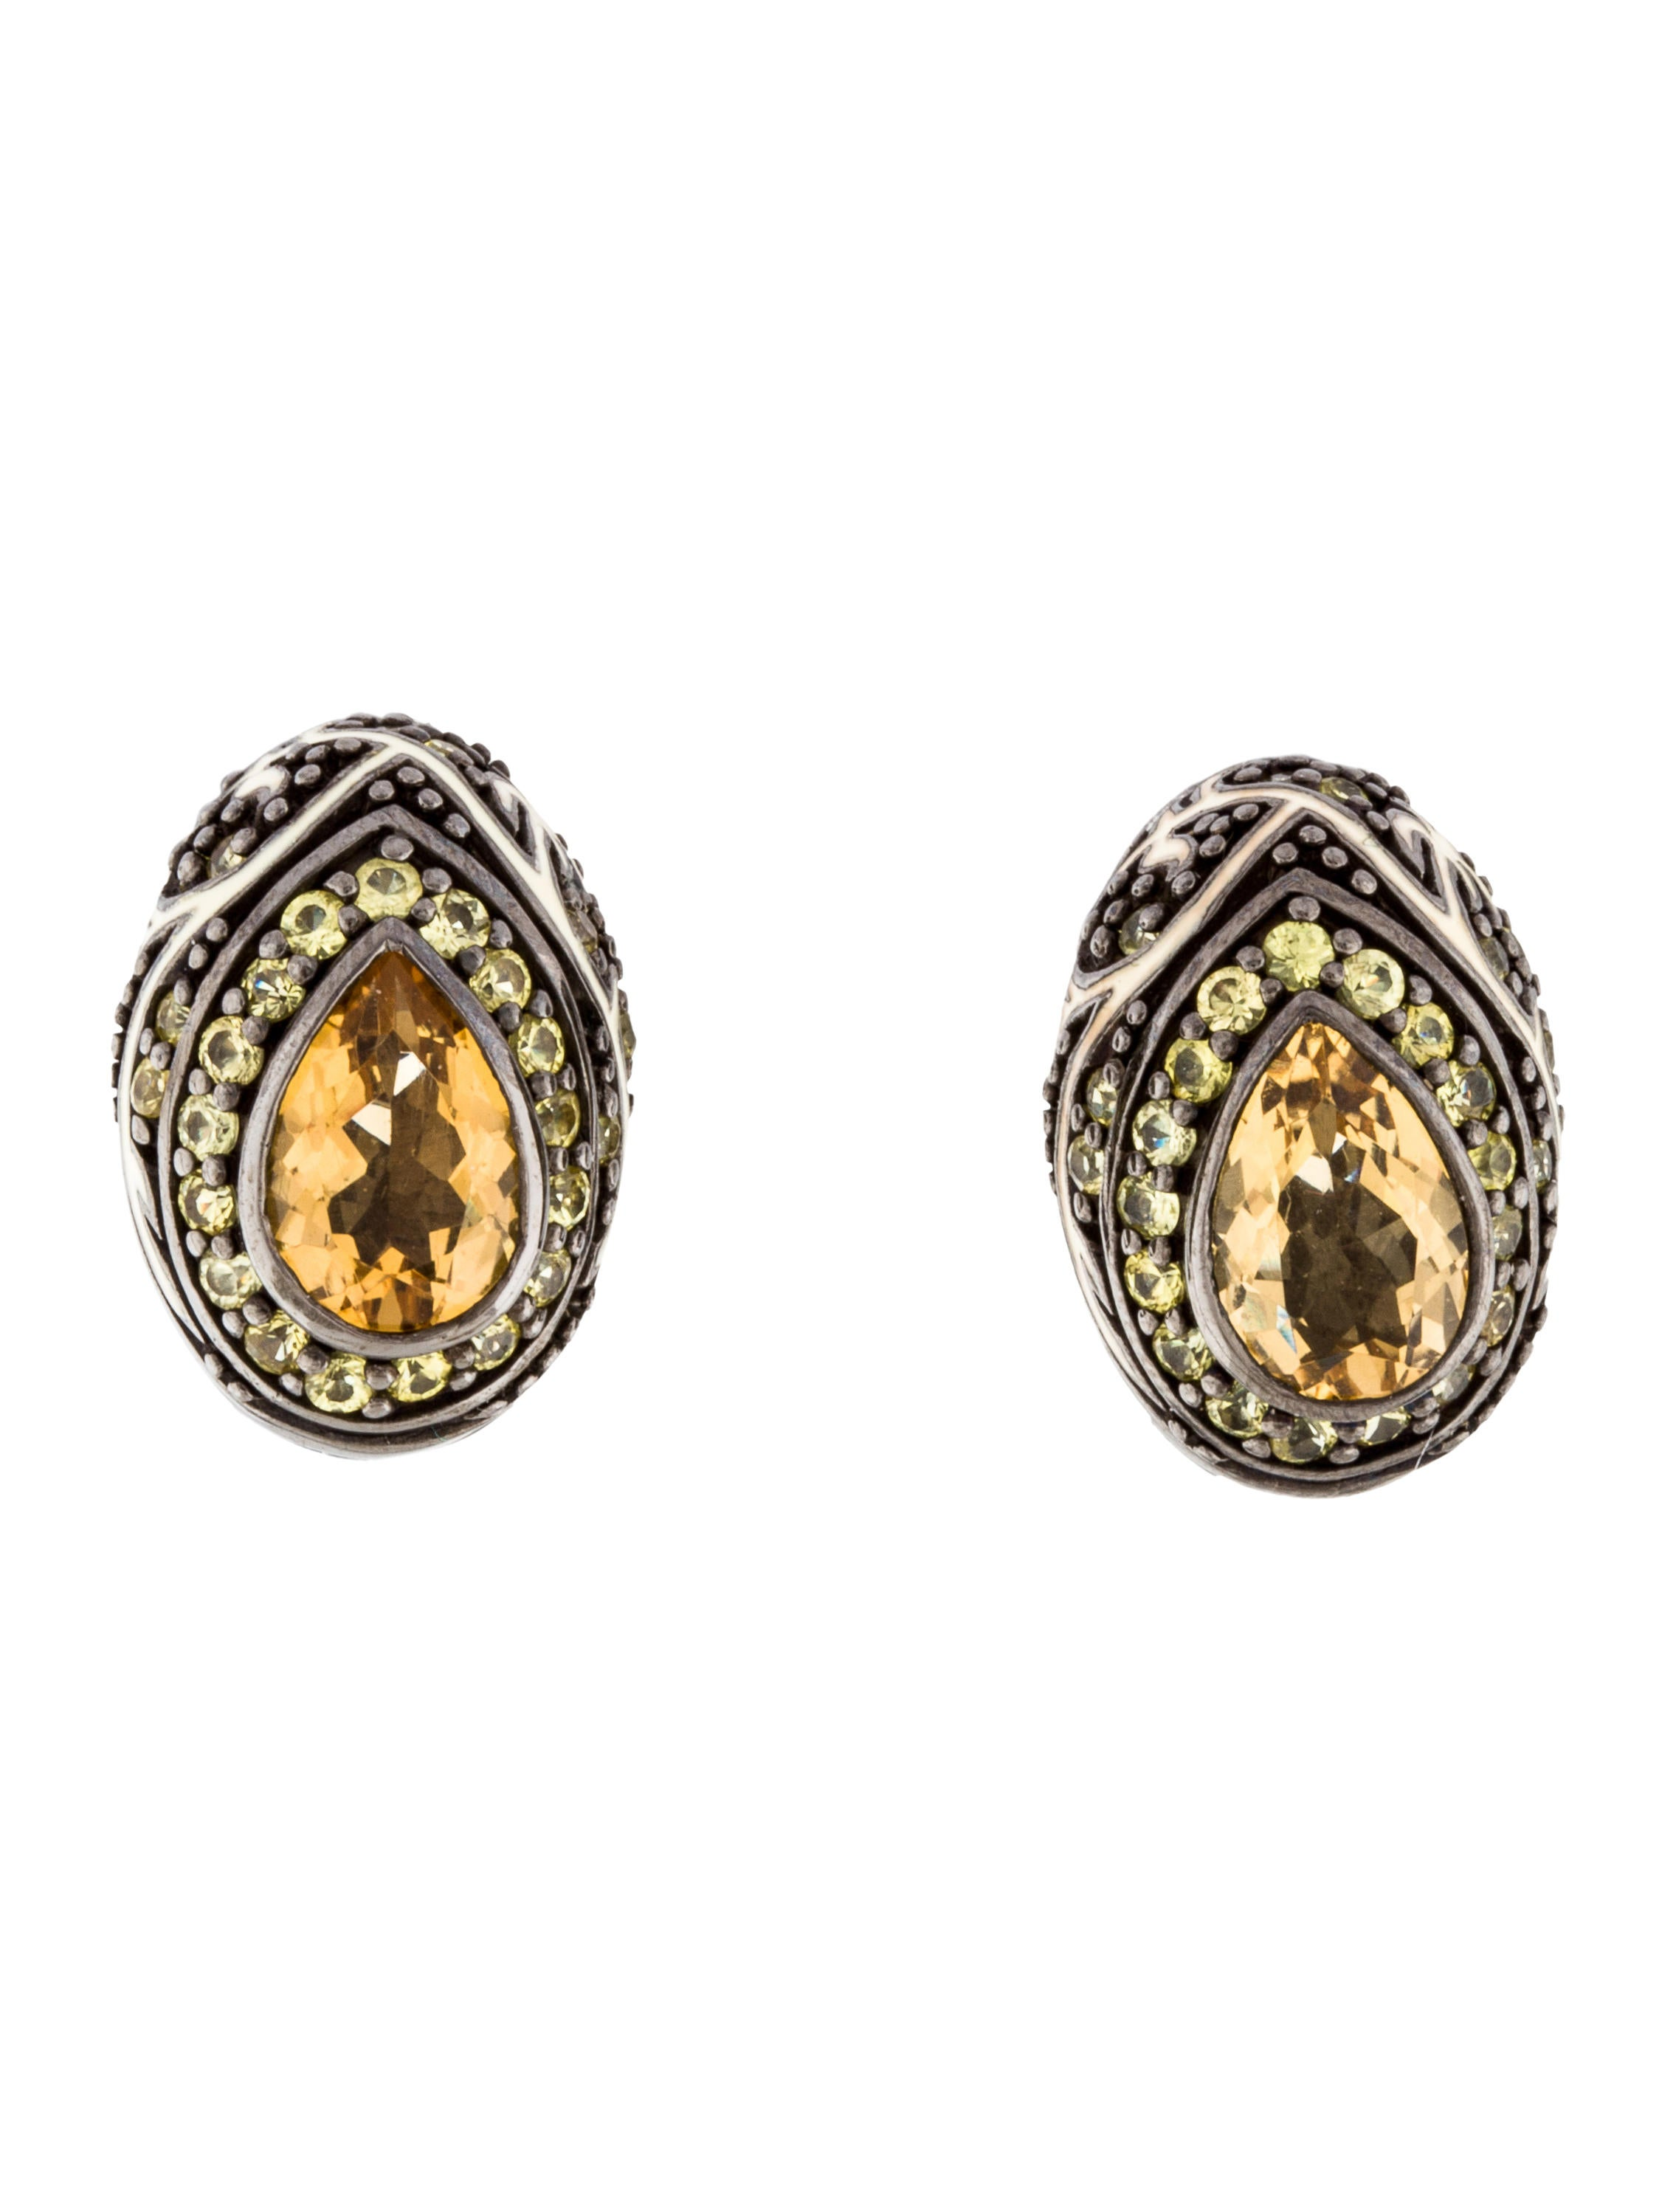 id animelier rose jewelry earrings sale enamel at for j z diamond green drop gold coin roberto cobra